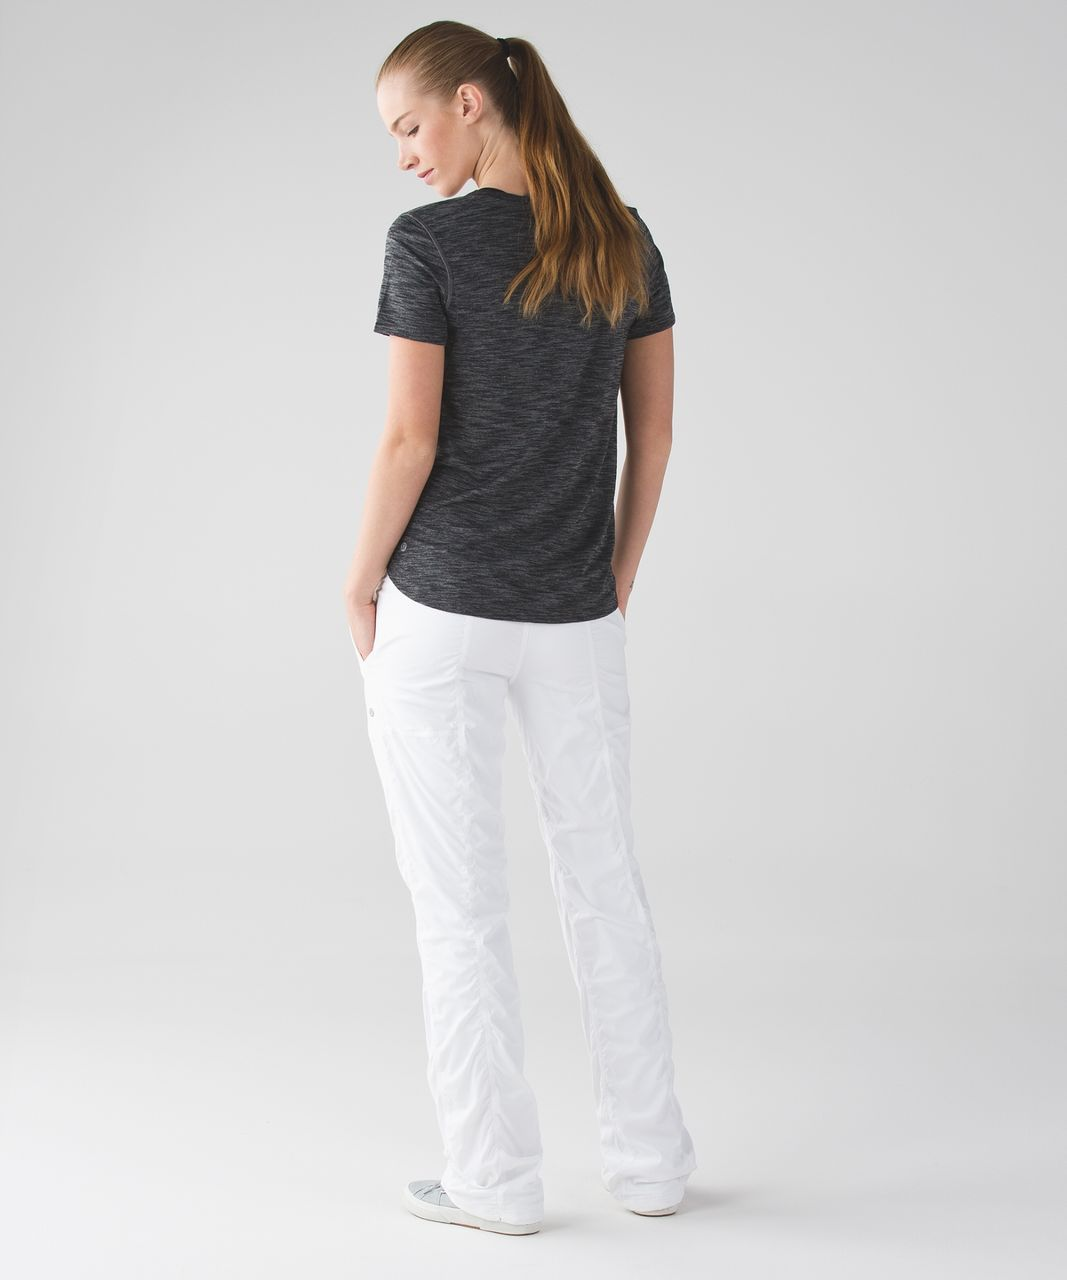 Lululemon Studio Pant III (Tall) - White